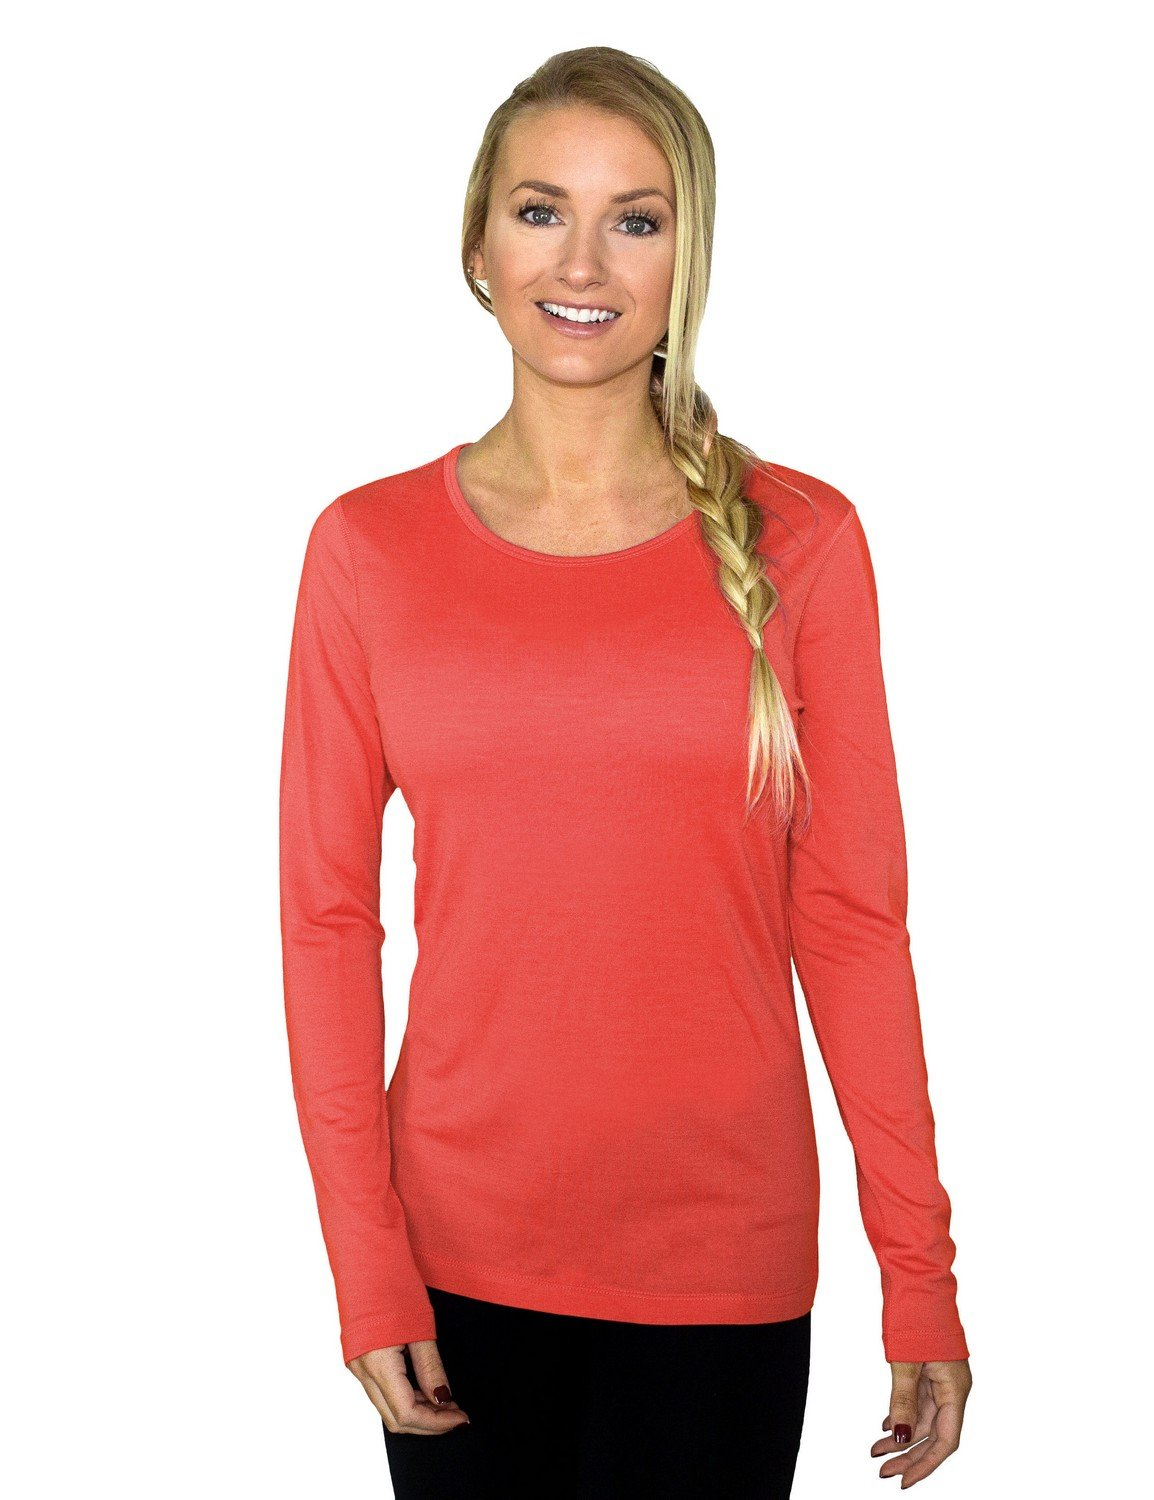 Woolx Remi - Women's Long Sleeve Tee - Lightweight, Moisture Wicking - Merino Wool Top, Spiced Coral, Medium